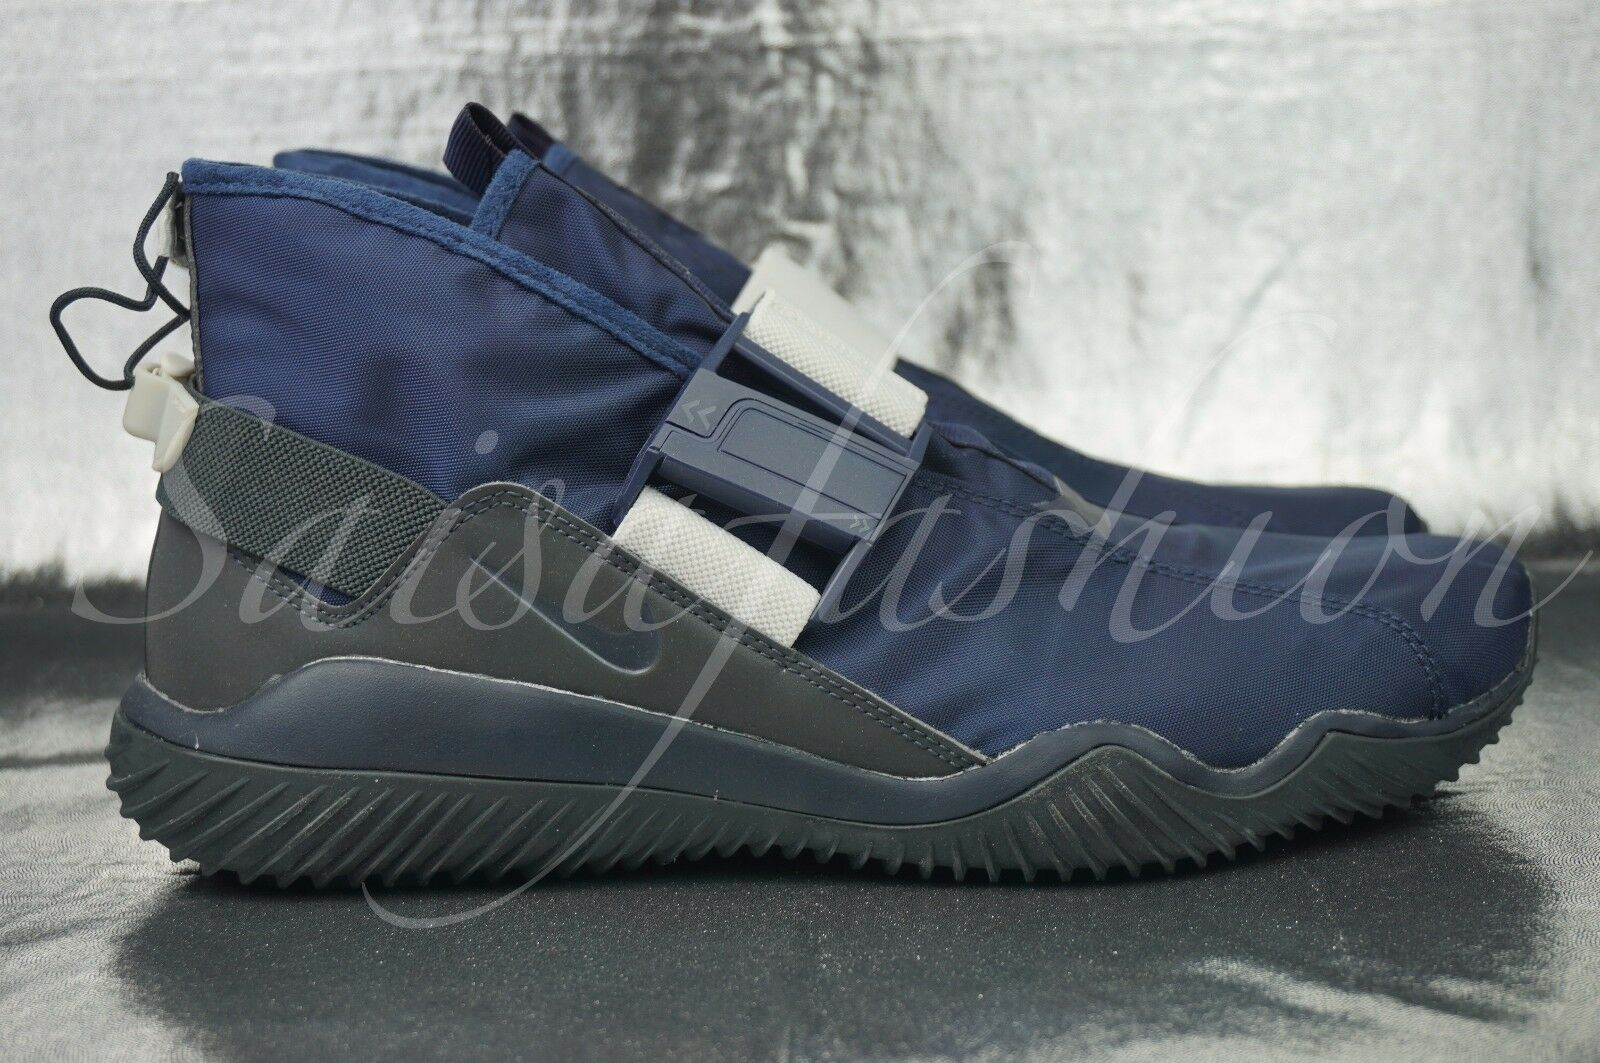 NIKE KOMYUTER SE ACG OBSIDIAN NAVY BLUE-ANTHRACITE AA0531-400 Sz 10.5 Comfortable and good-looking